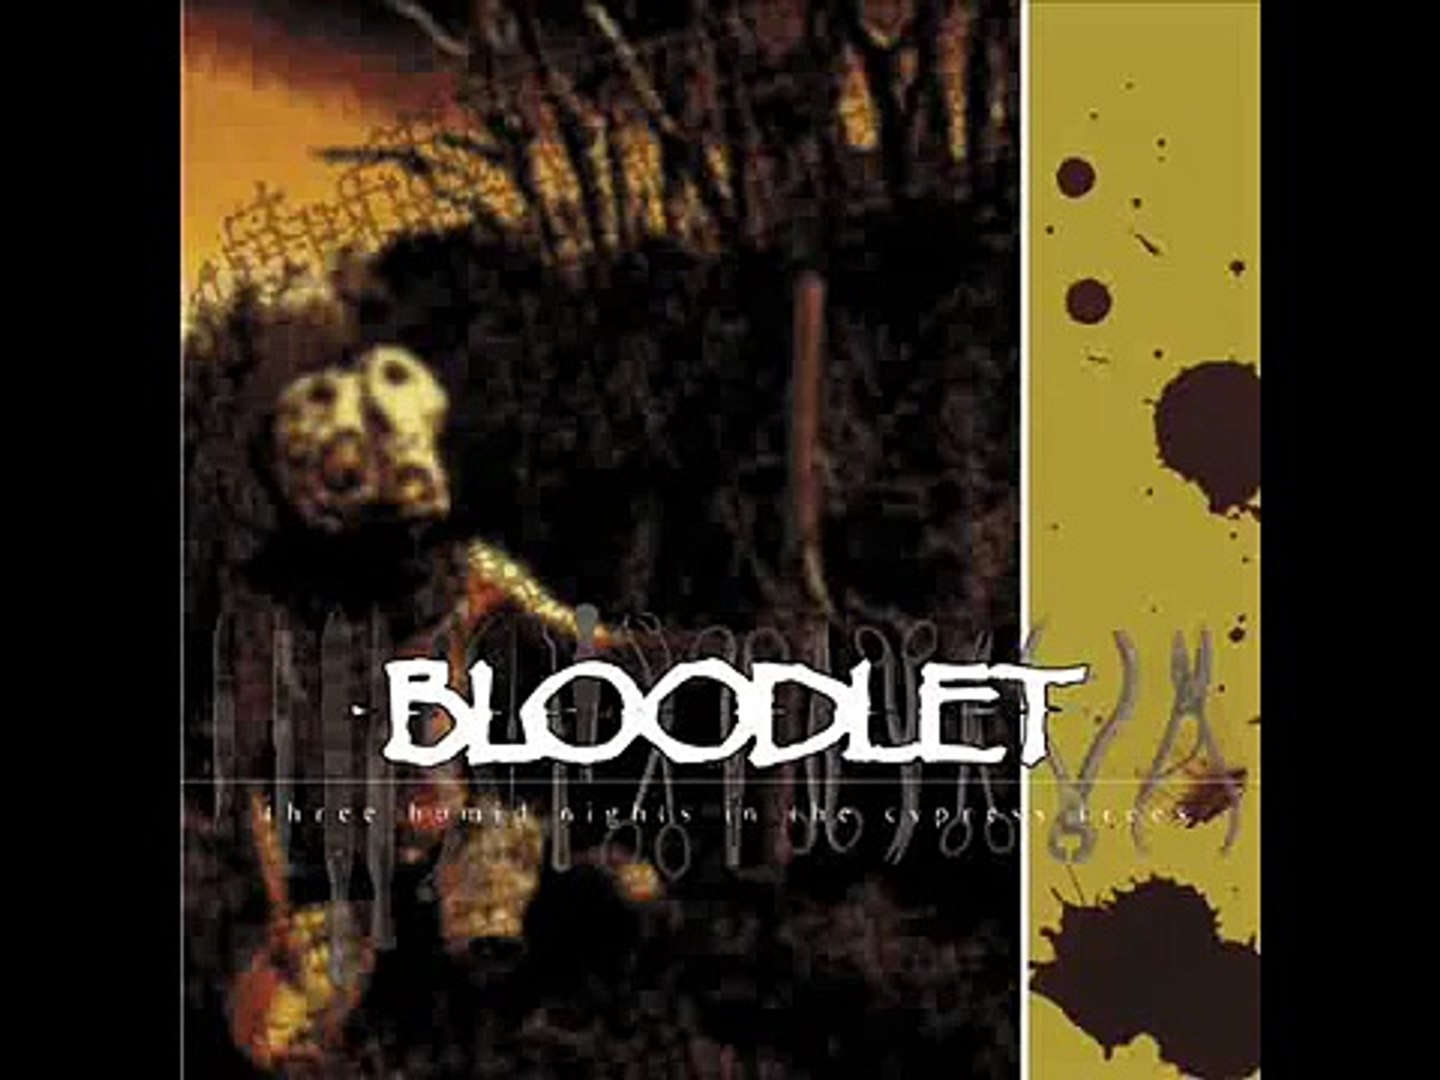 BLOODLET - LEARN TO FLY: ACENT